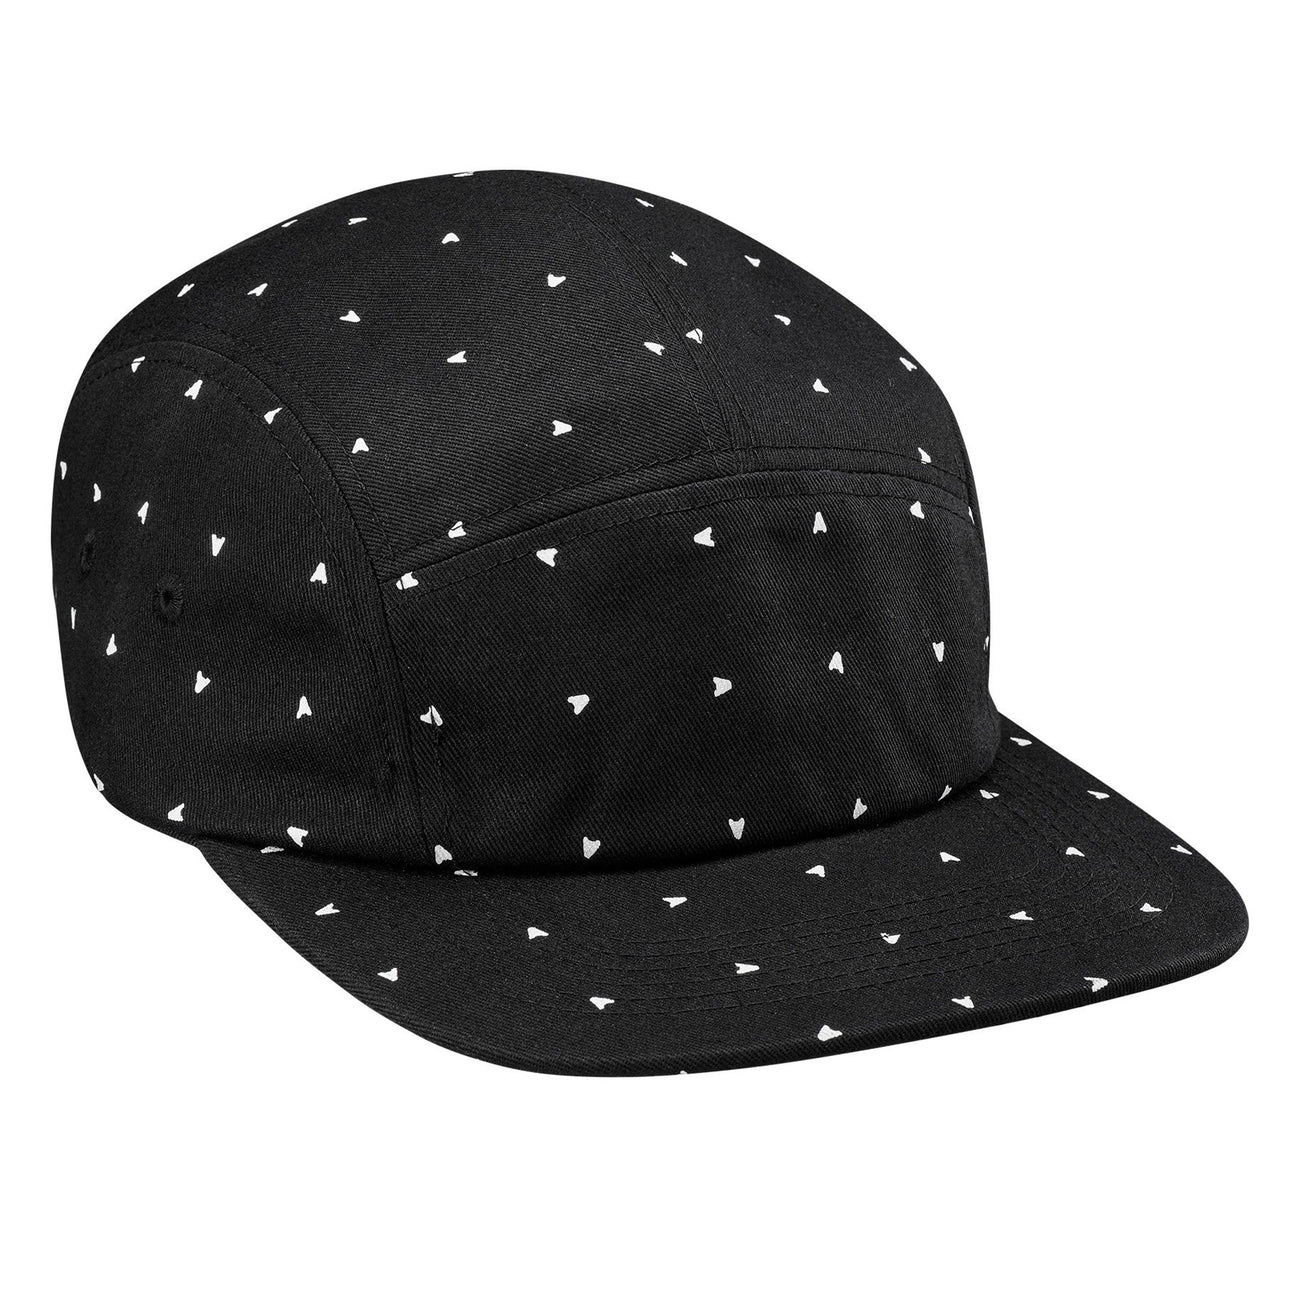 Armin van Buuren All-Over Five Panel Cap